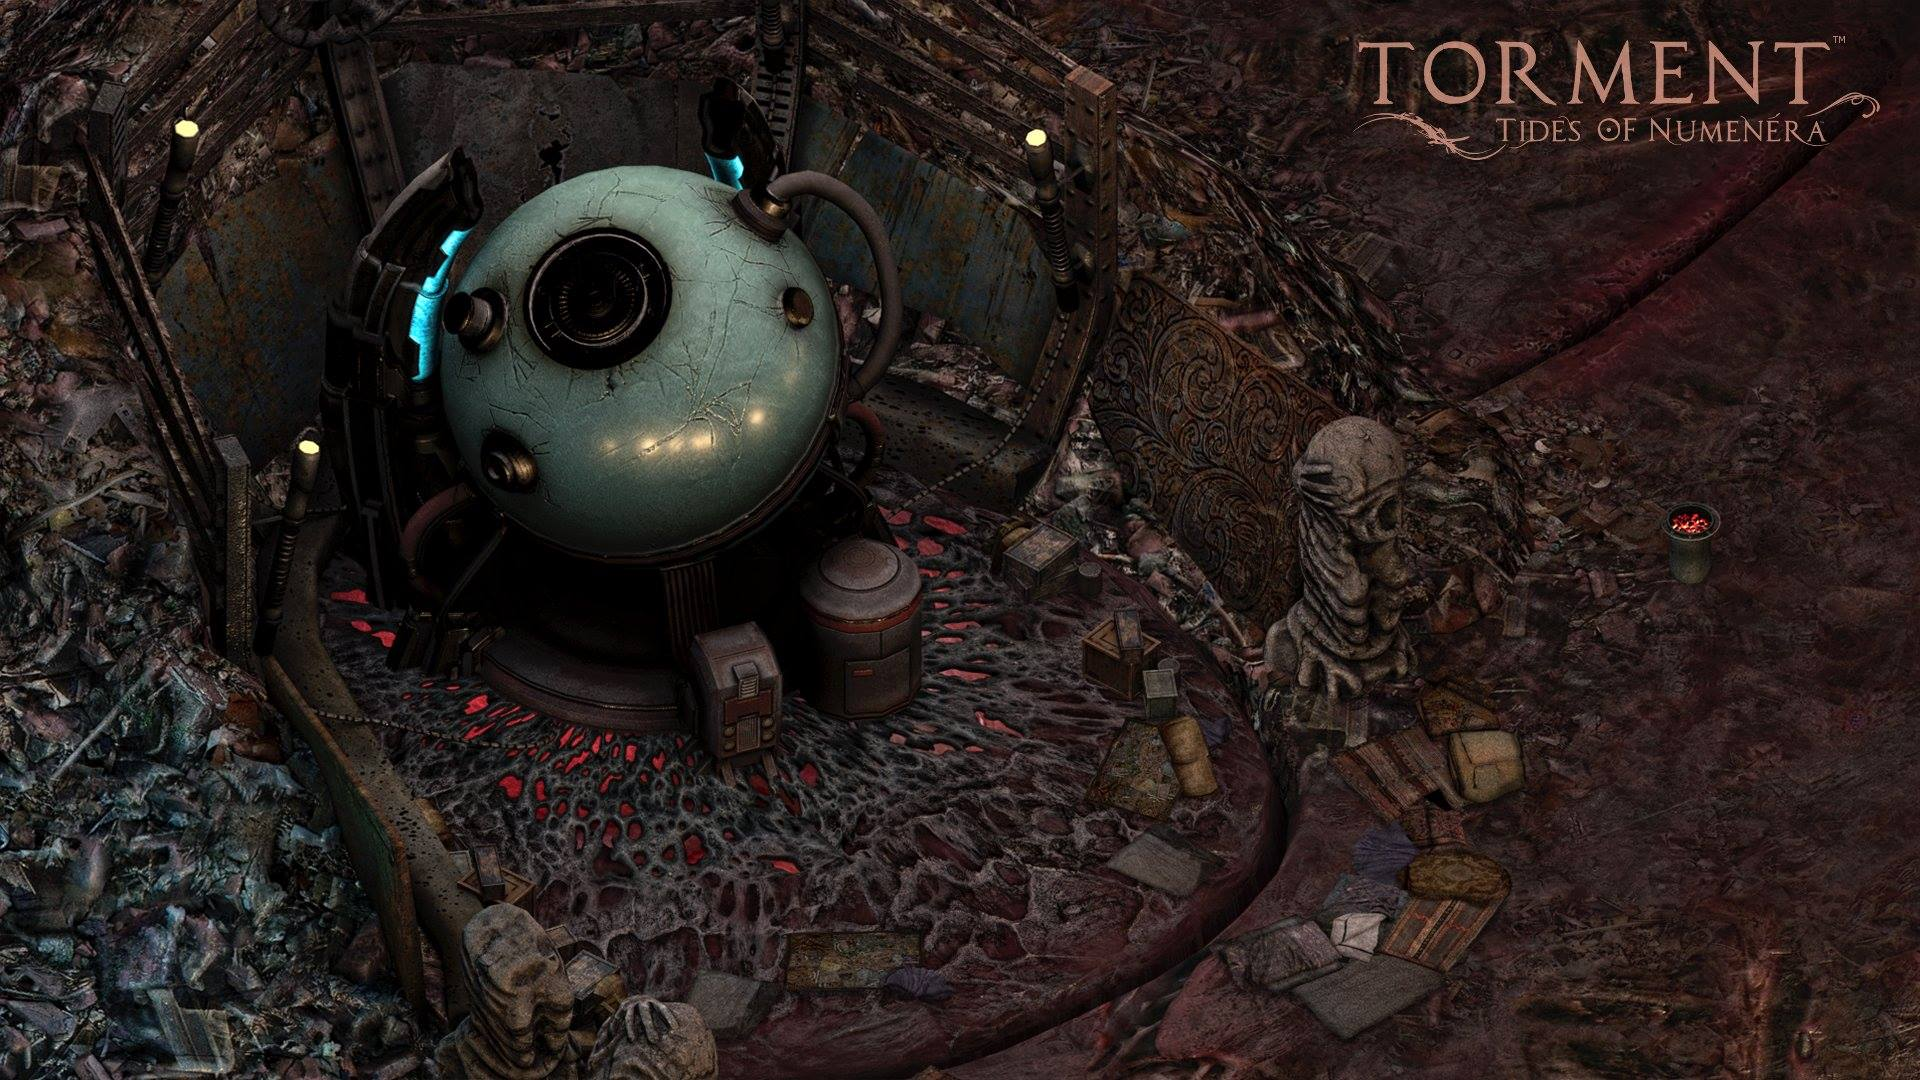 Torment: Tides of Numenera pushed back to 2017